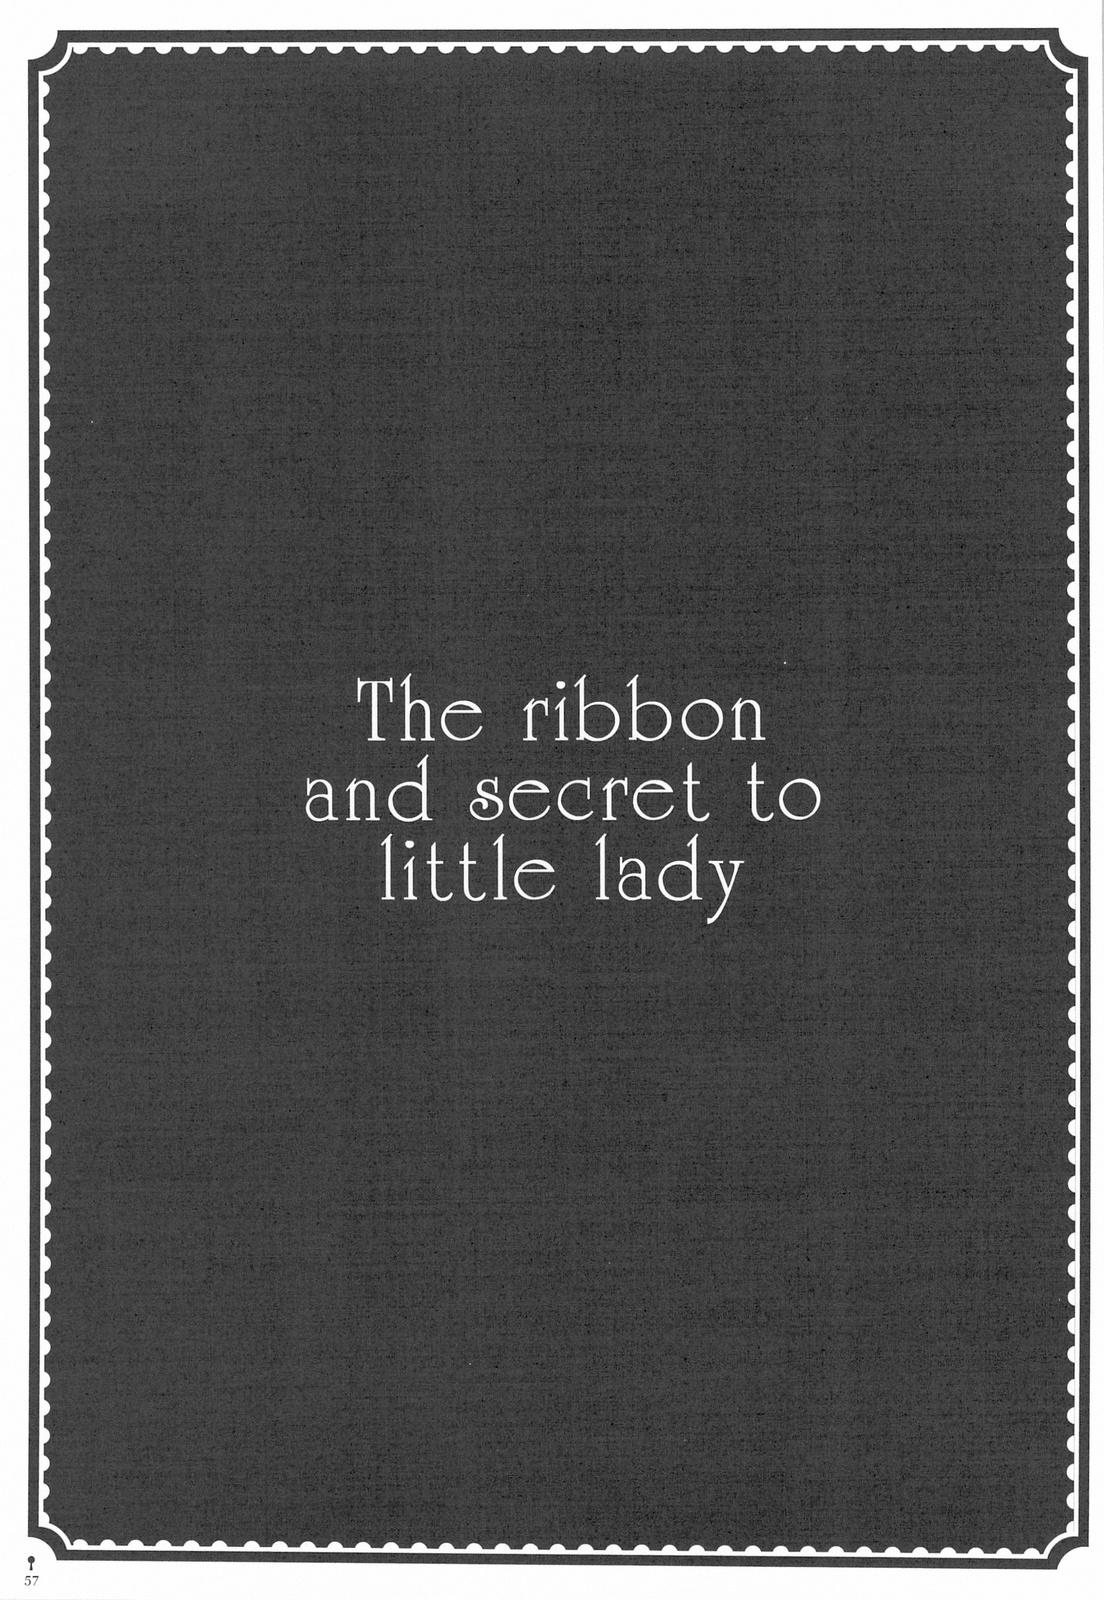 The ribbon and secret to little lady 58